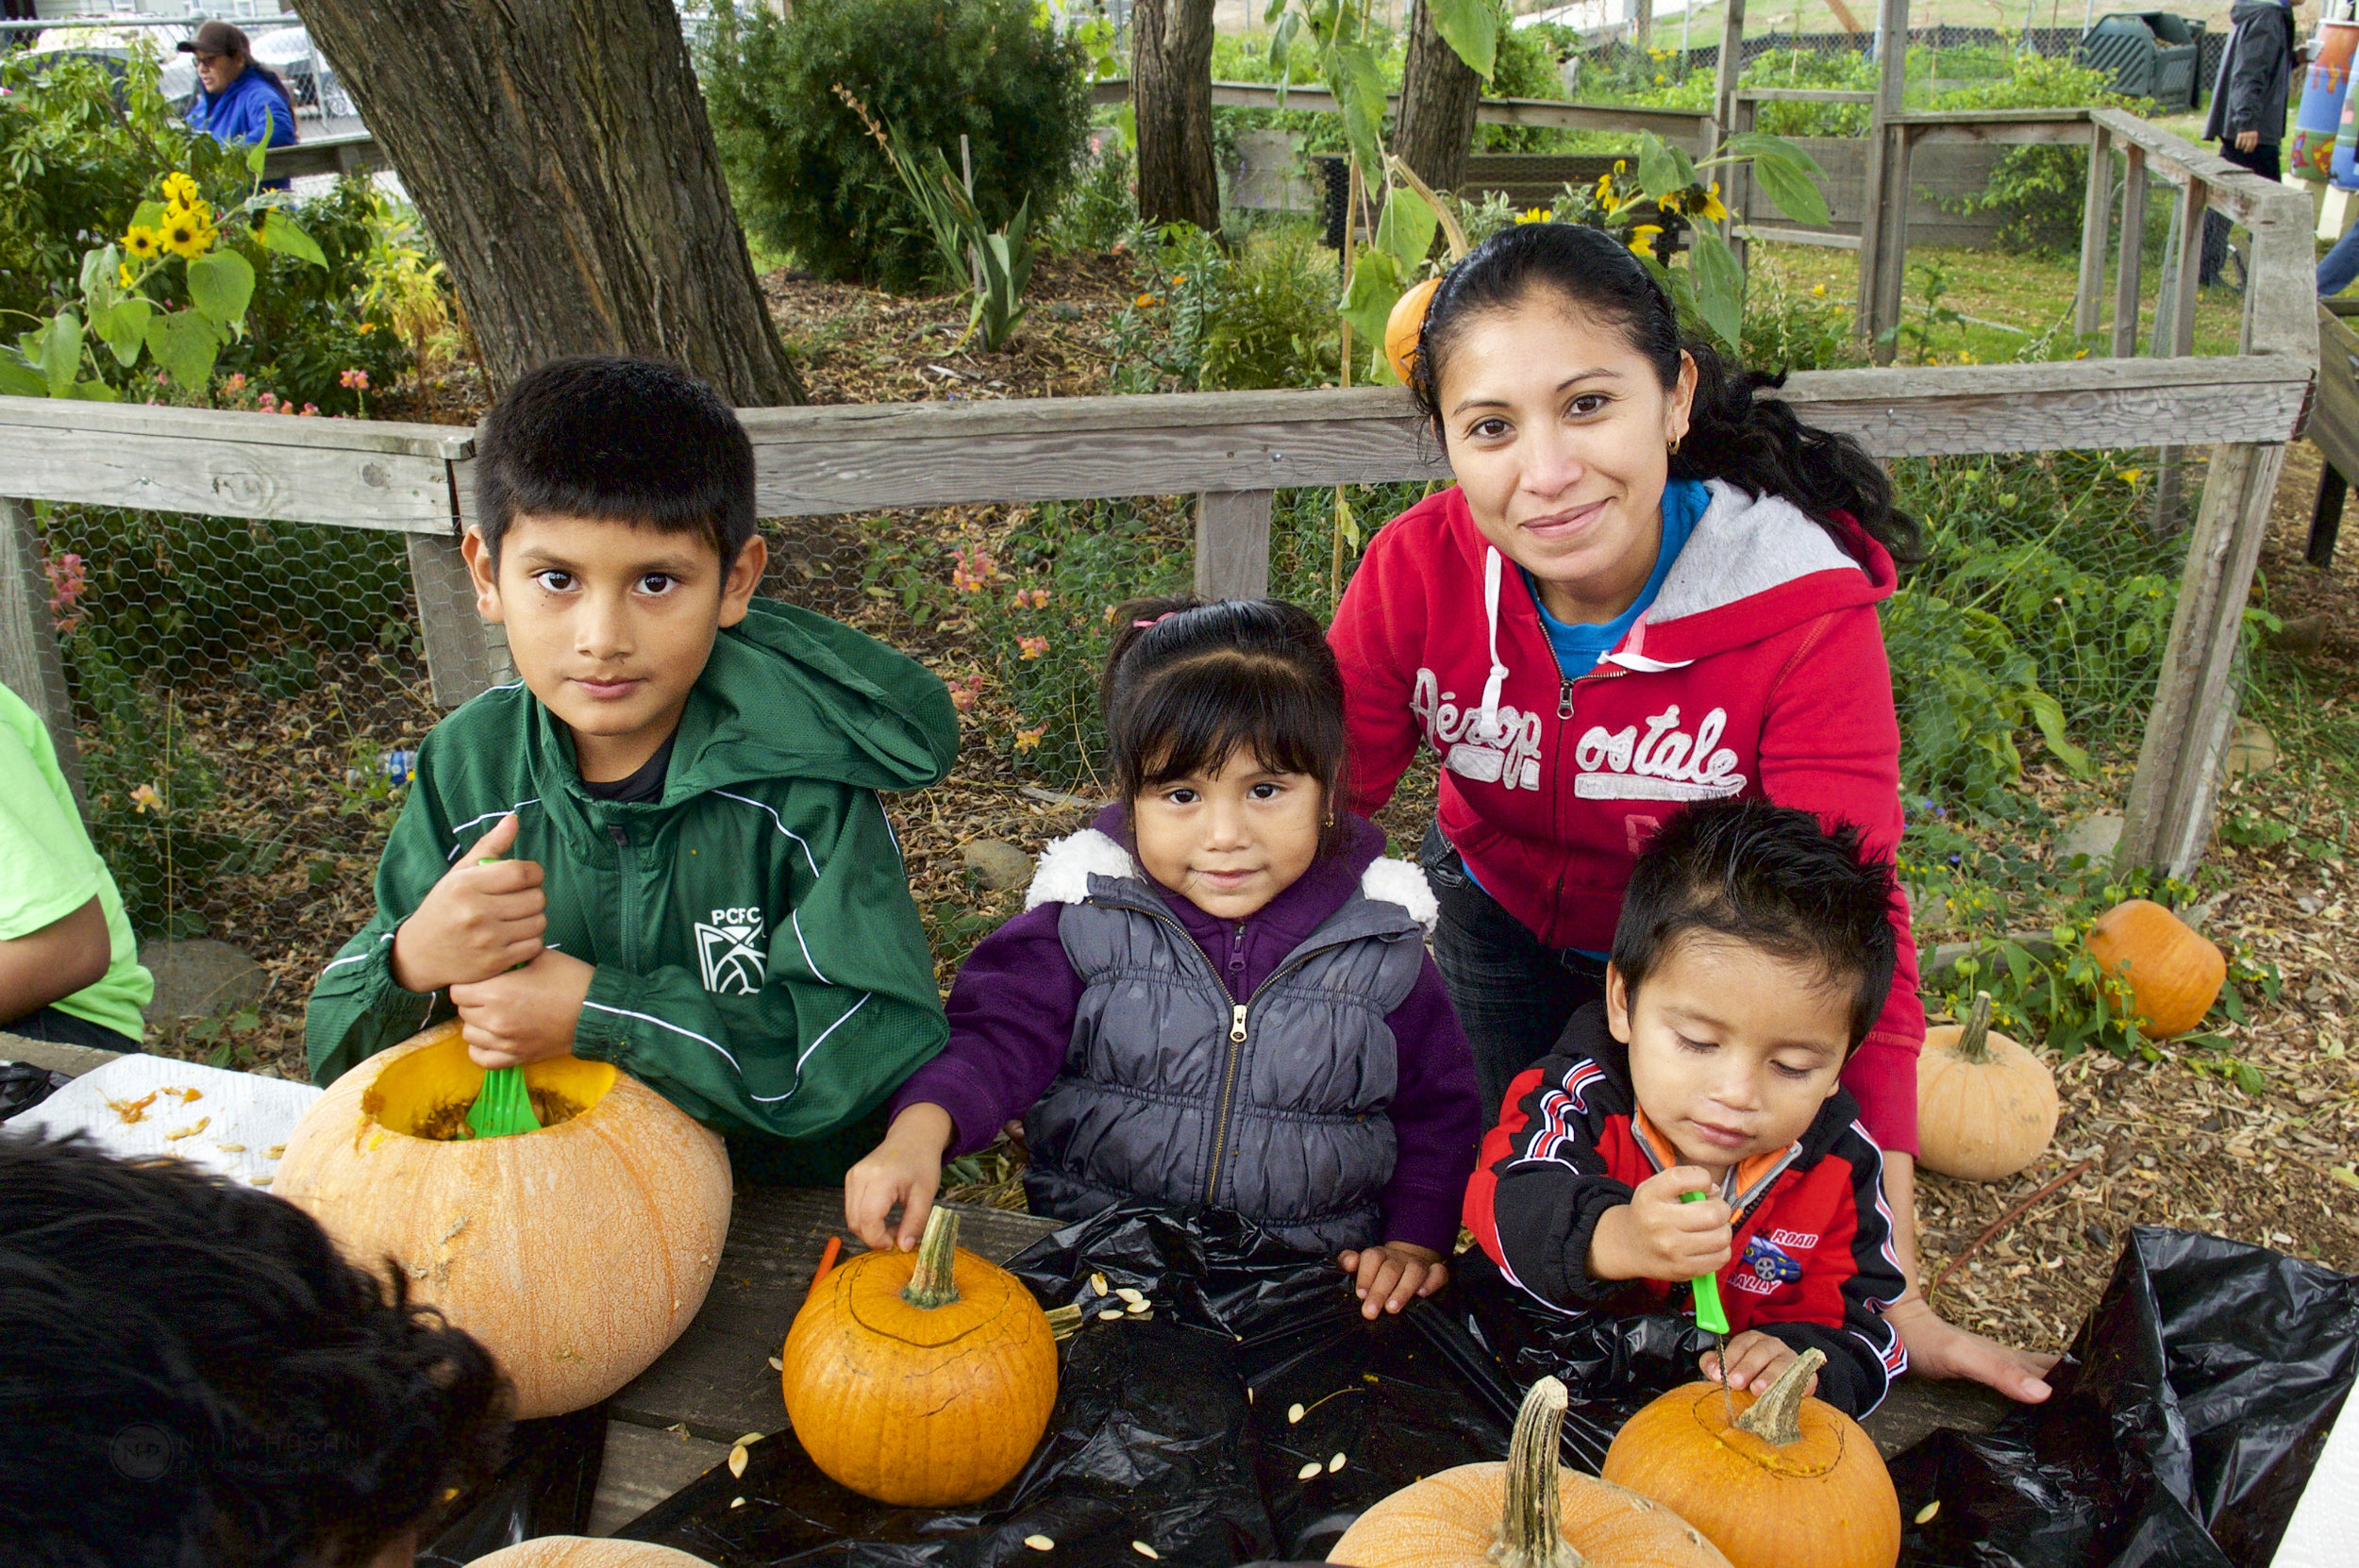 Community Members attend a Pumpkin Carving event at the Community Garden in October 2017. Naim Hasan Photography.